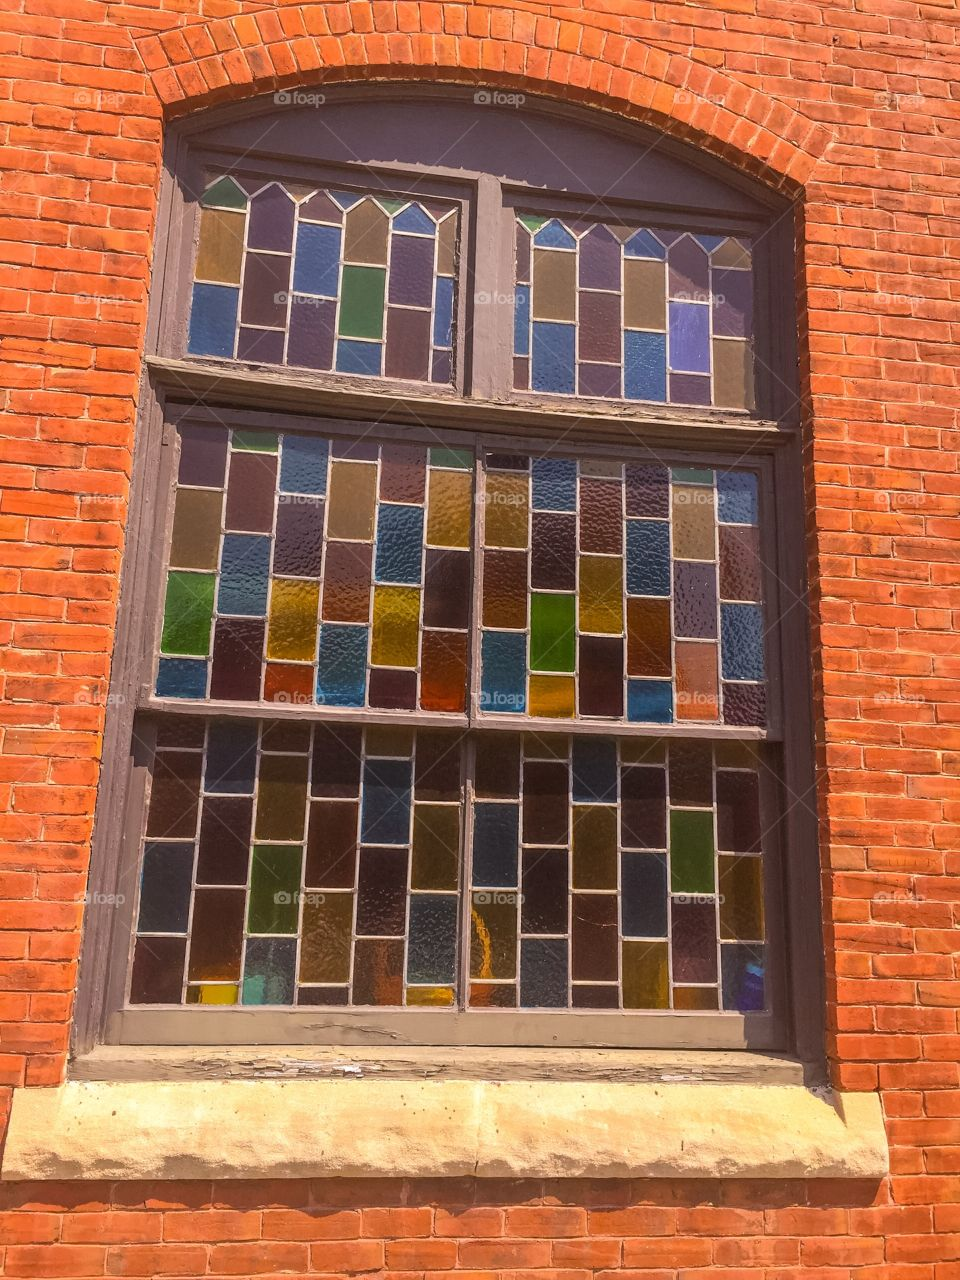 Windows of stained glass